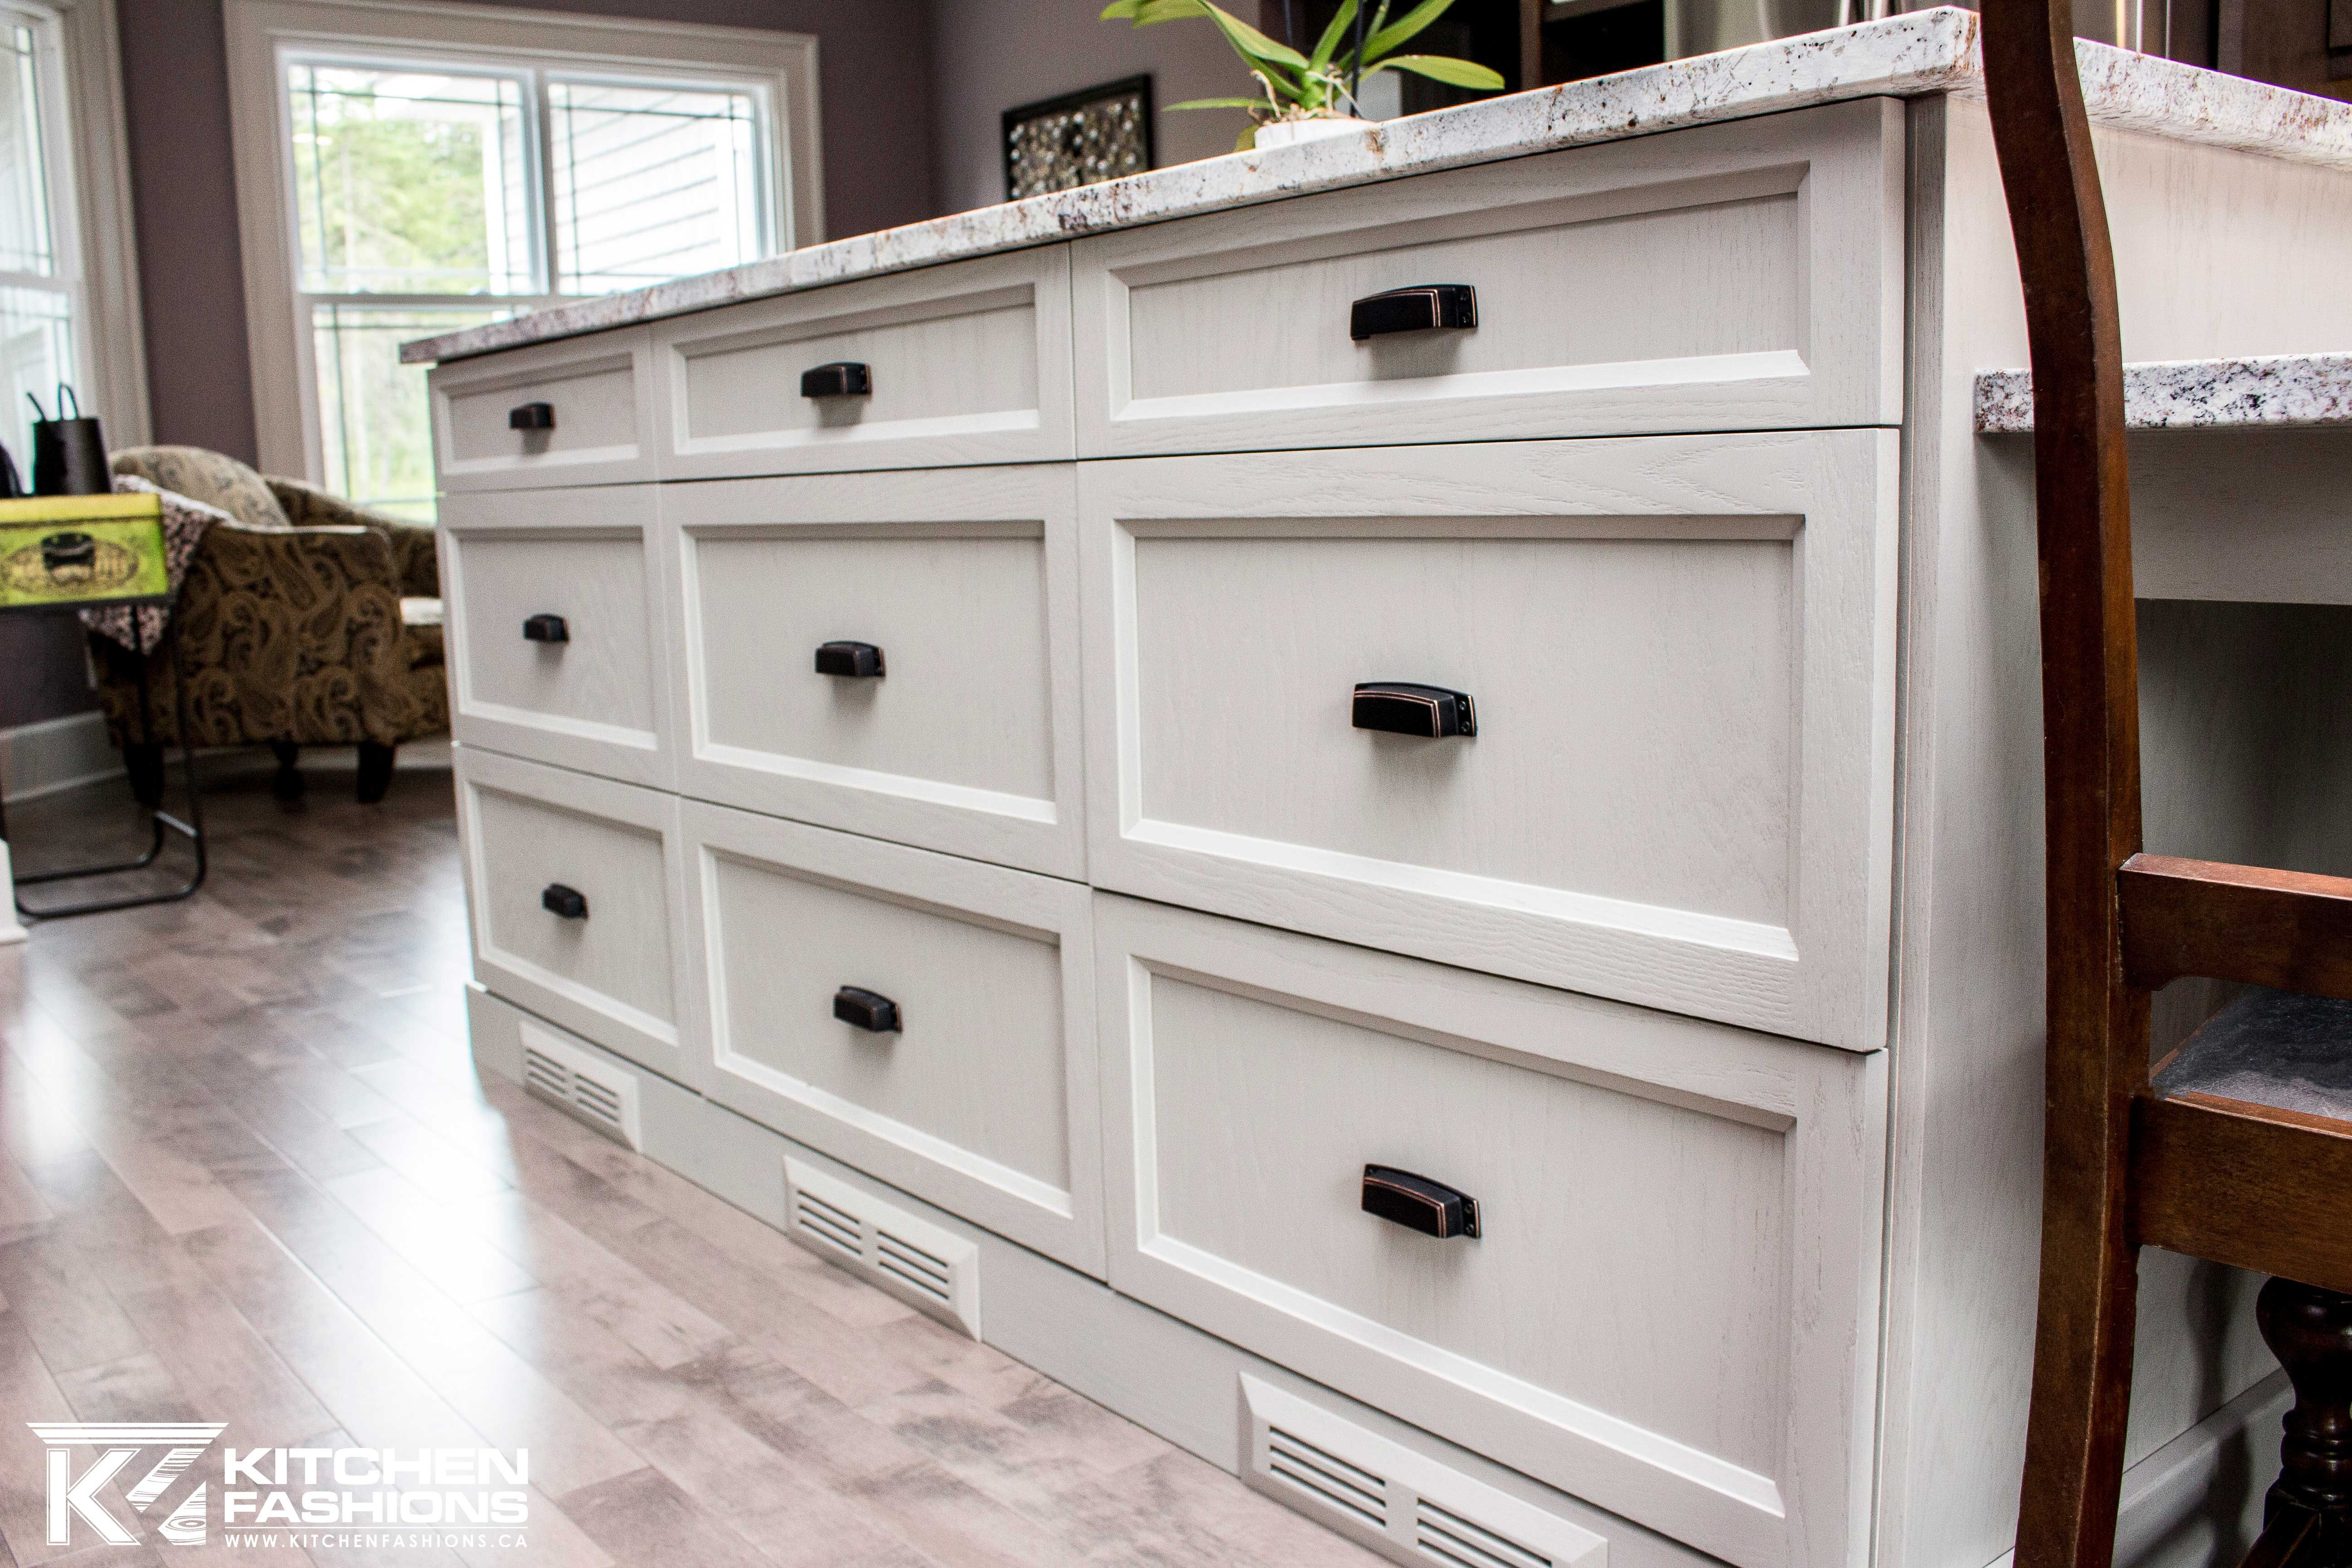 black cup pull hardware on pot and pan drawers | Hardware ...